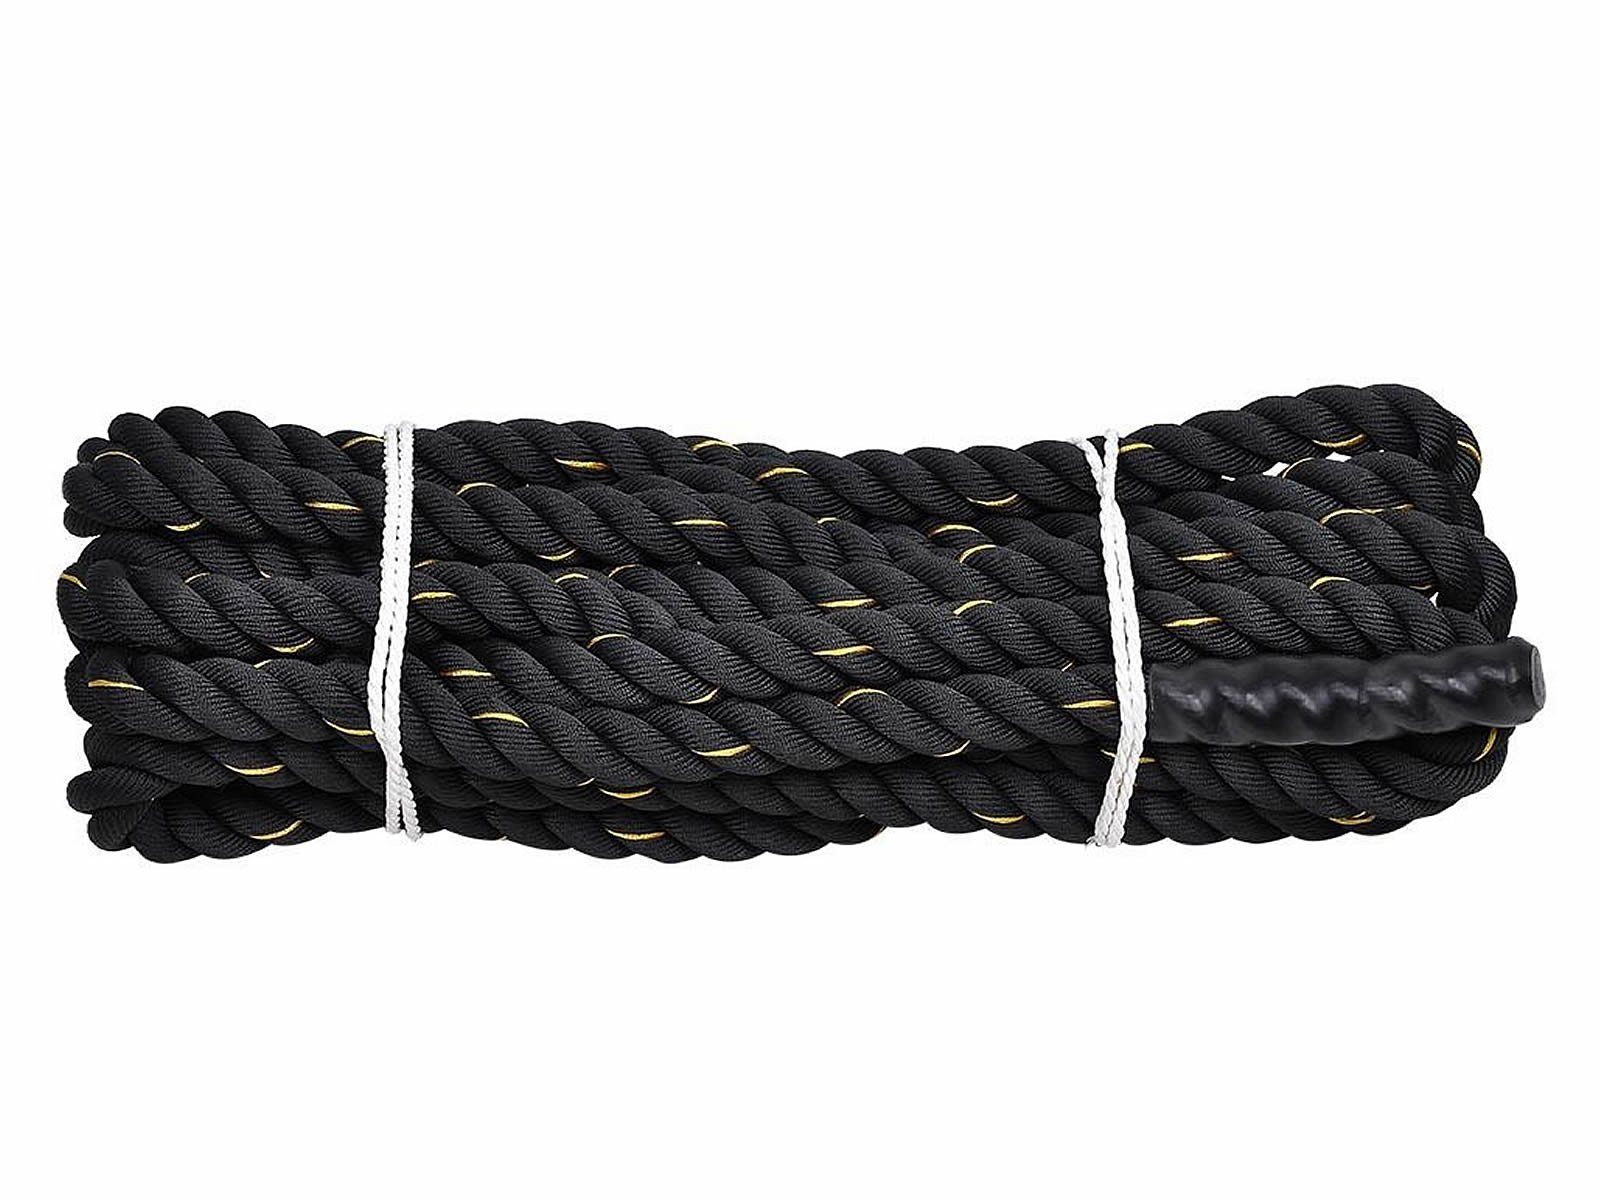 Battle Rope Training Undulation Extremely Workout Stamina for Gain Lean Muscle by DTOFREE (Image #3)